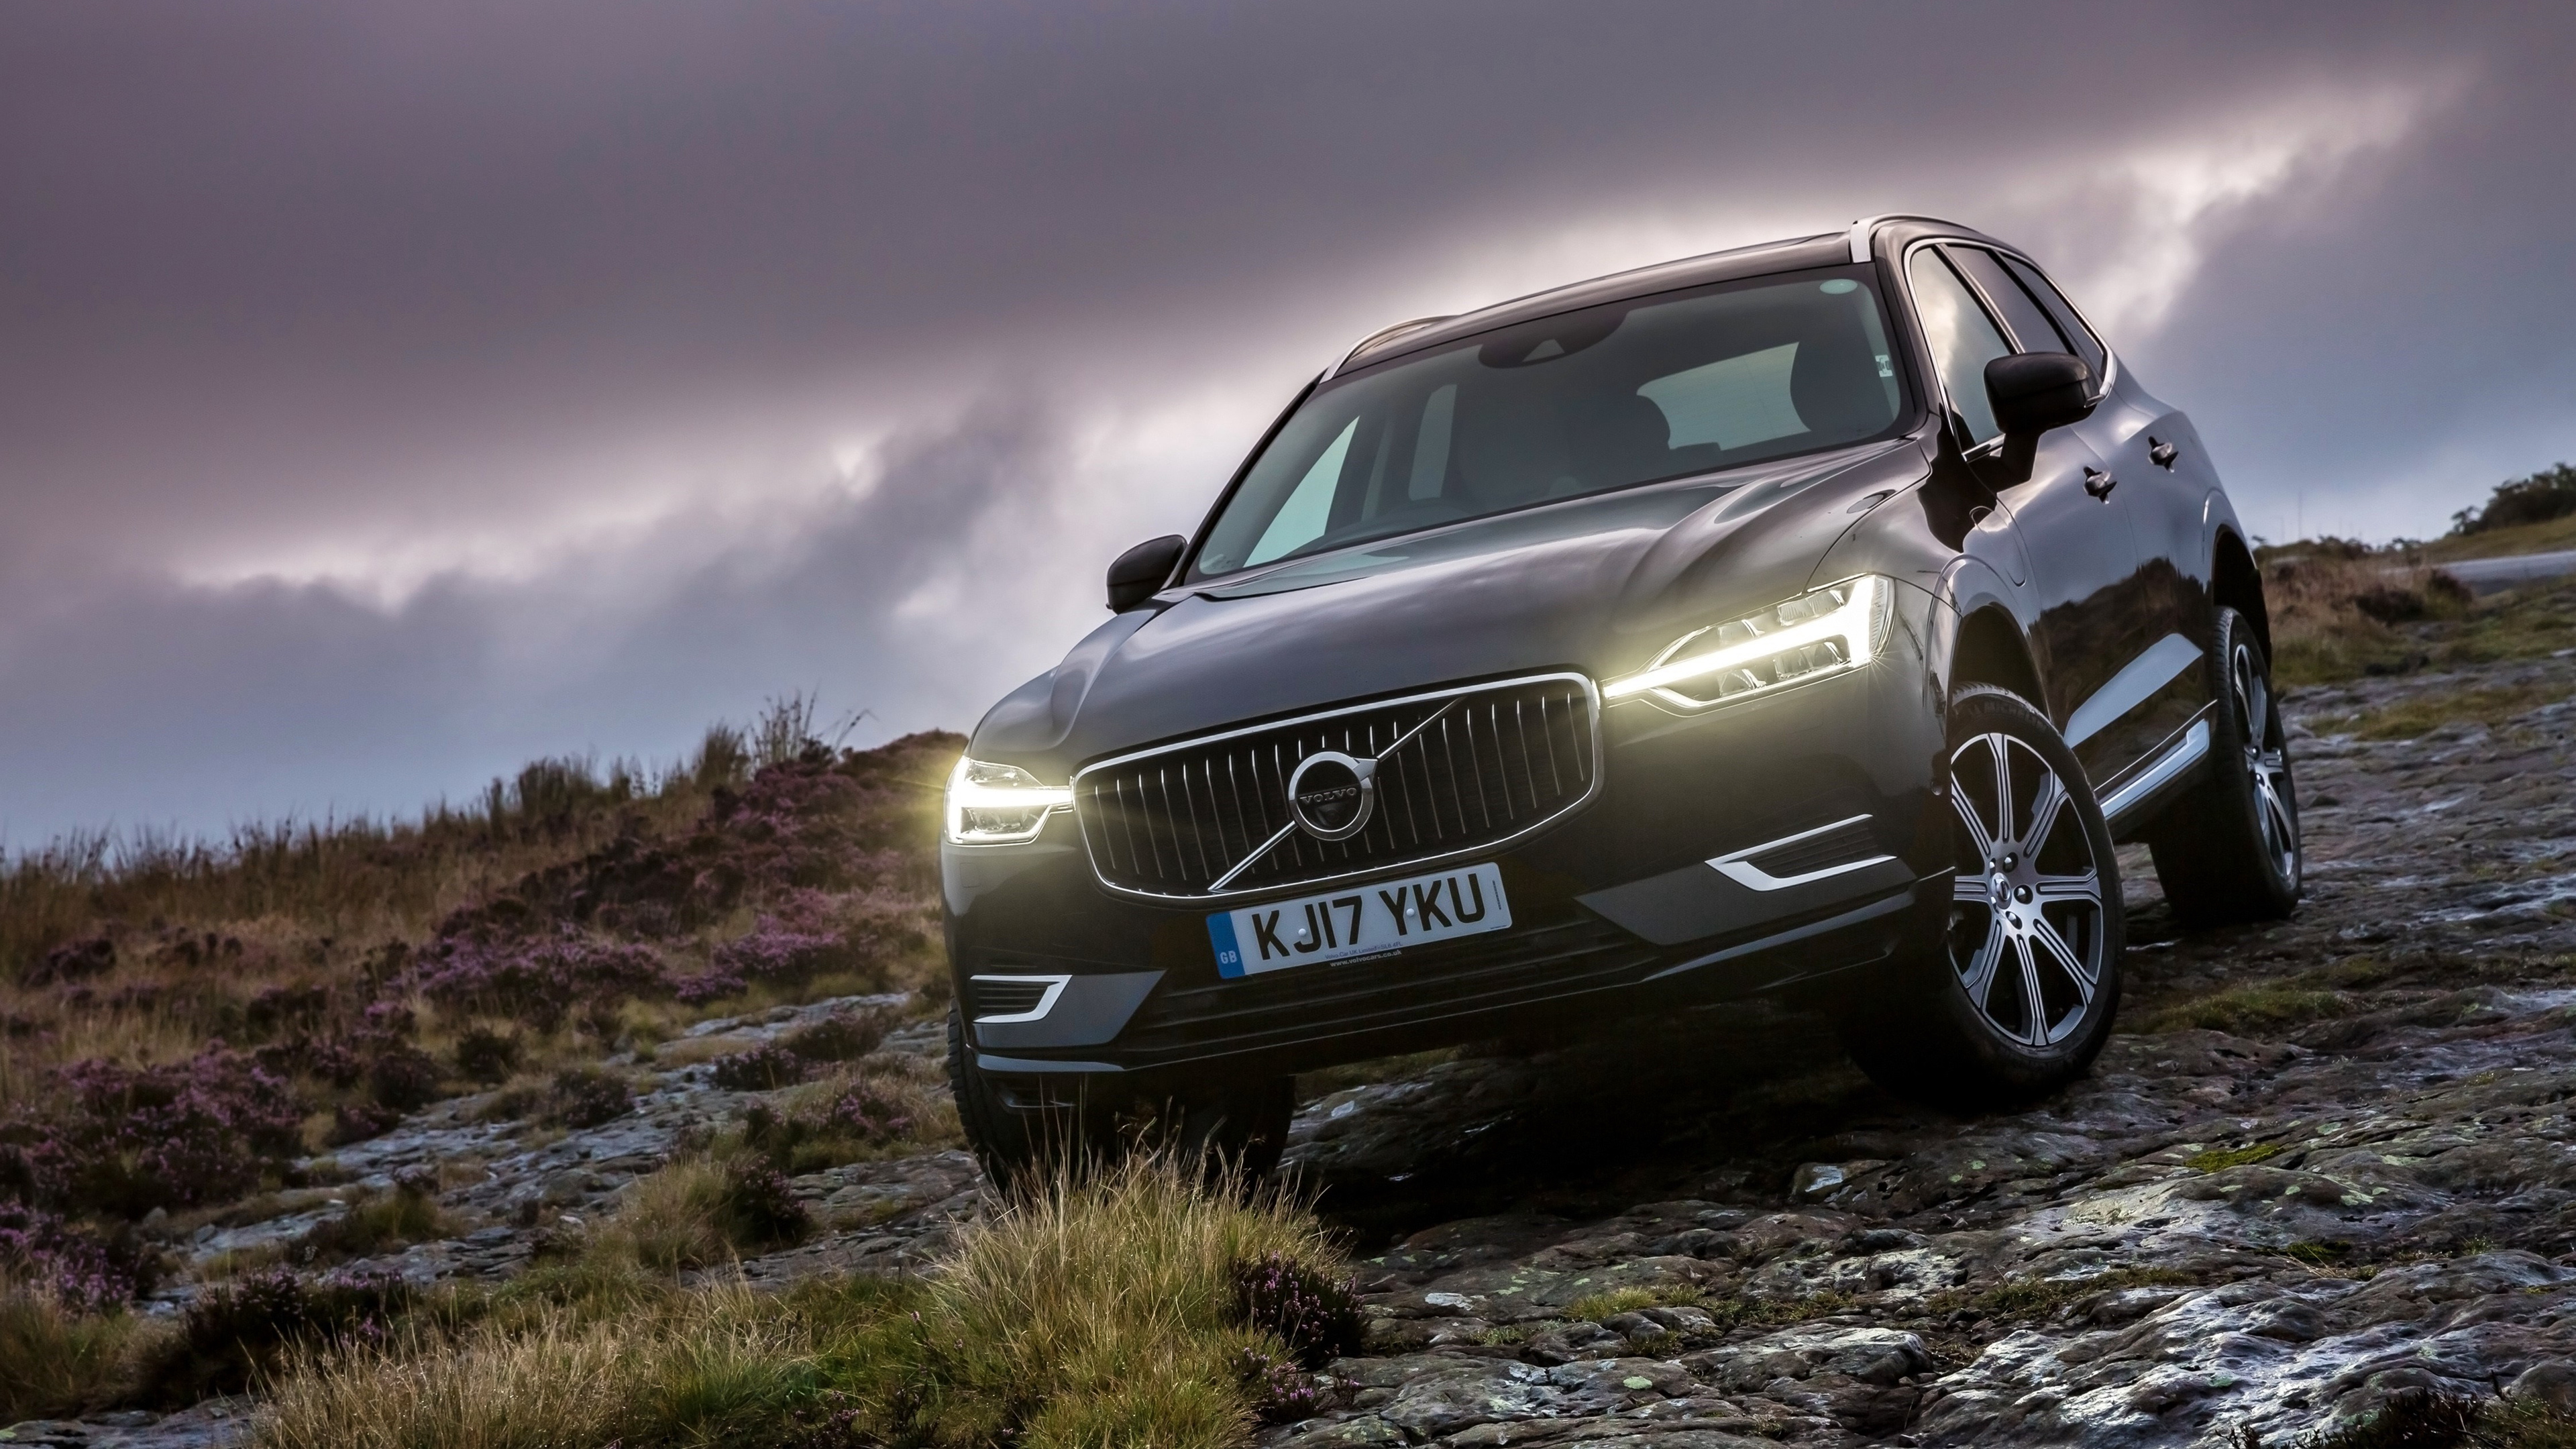 Volvo XC60 Wide Wallpaper HD 62018 3840x2160 px ~ HDWallSource.com